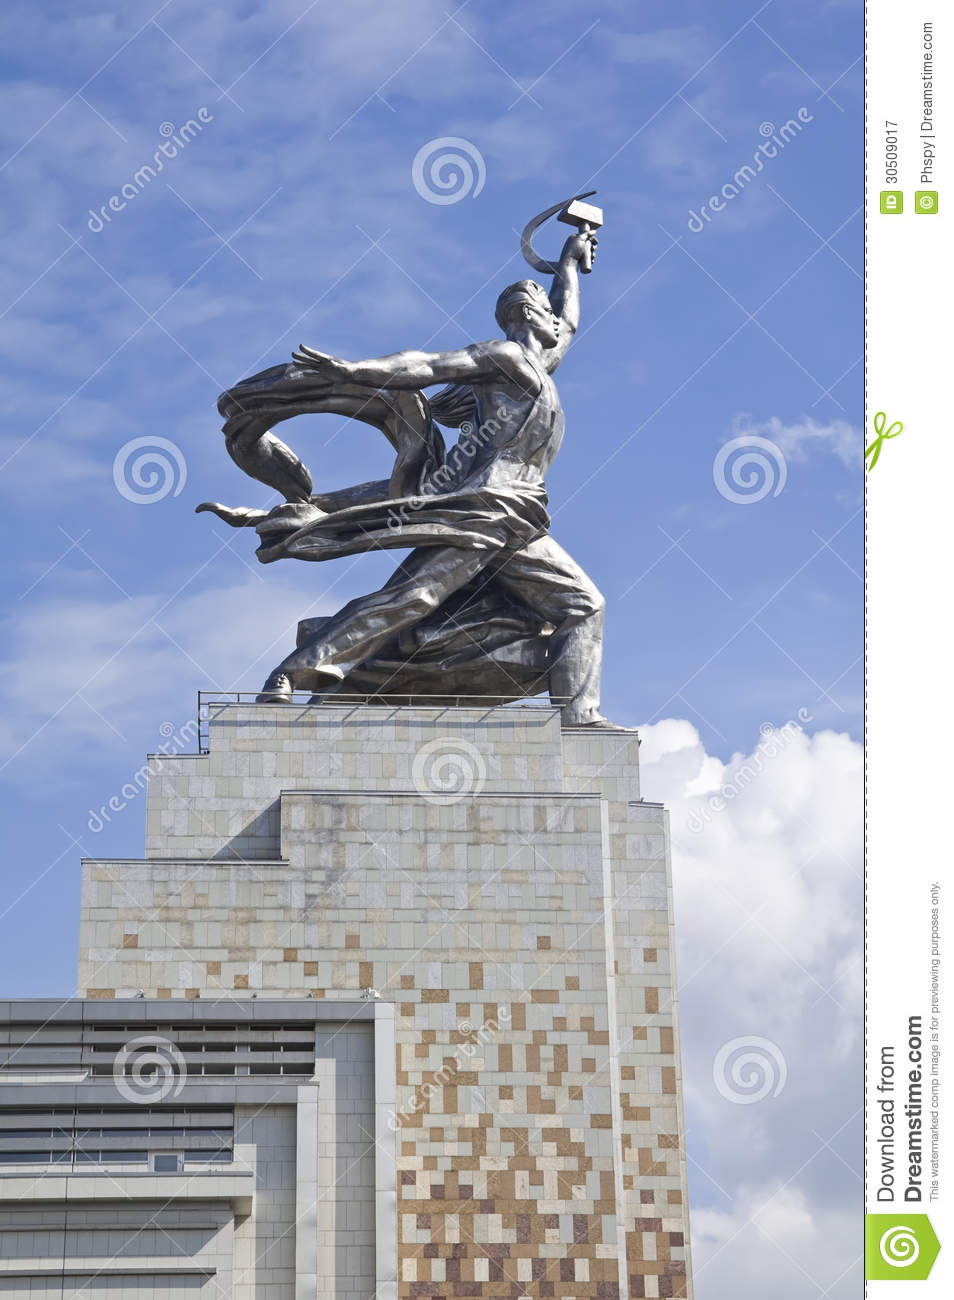 MOSCOW - AUGUST 12: Famous soviet monument Worker and Kolkhoz Woman (Worker and Collective Farmer) of sculptor Vera Mukhina on Au